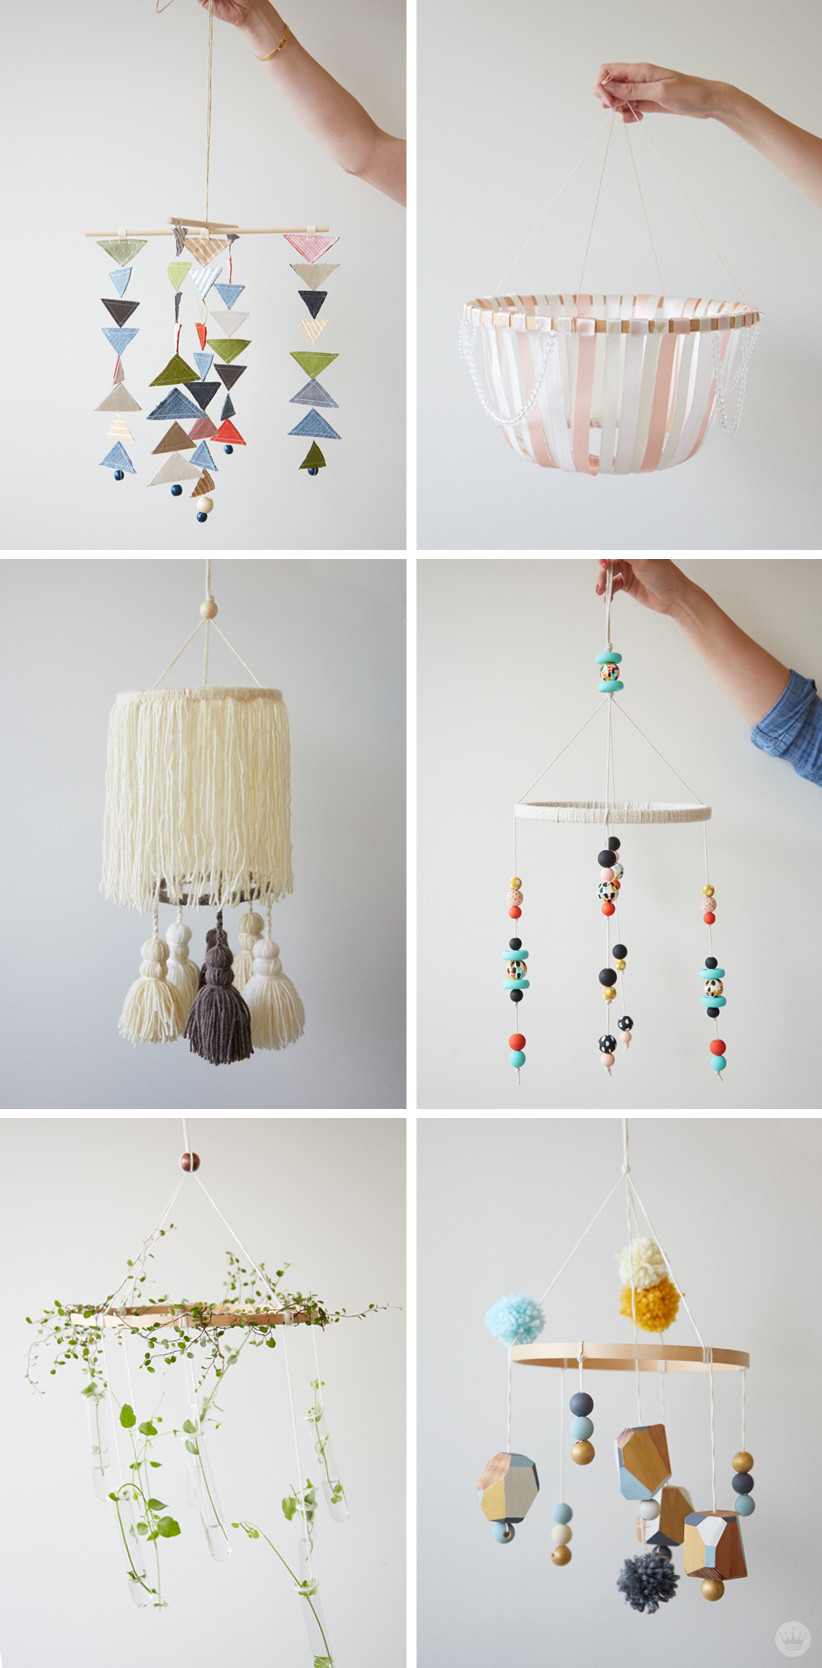 Best ideas about DIY Crib Mobiles . Save or Pin DIY Embroidery Hoop Baby Mobile Think Make Now.